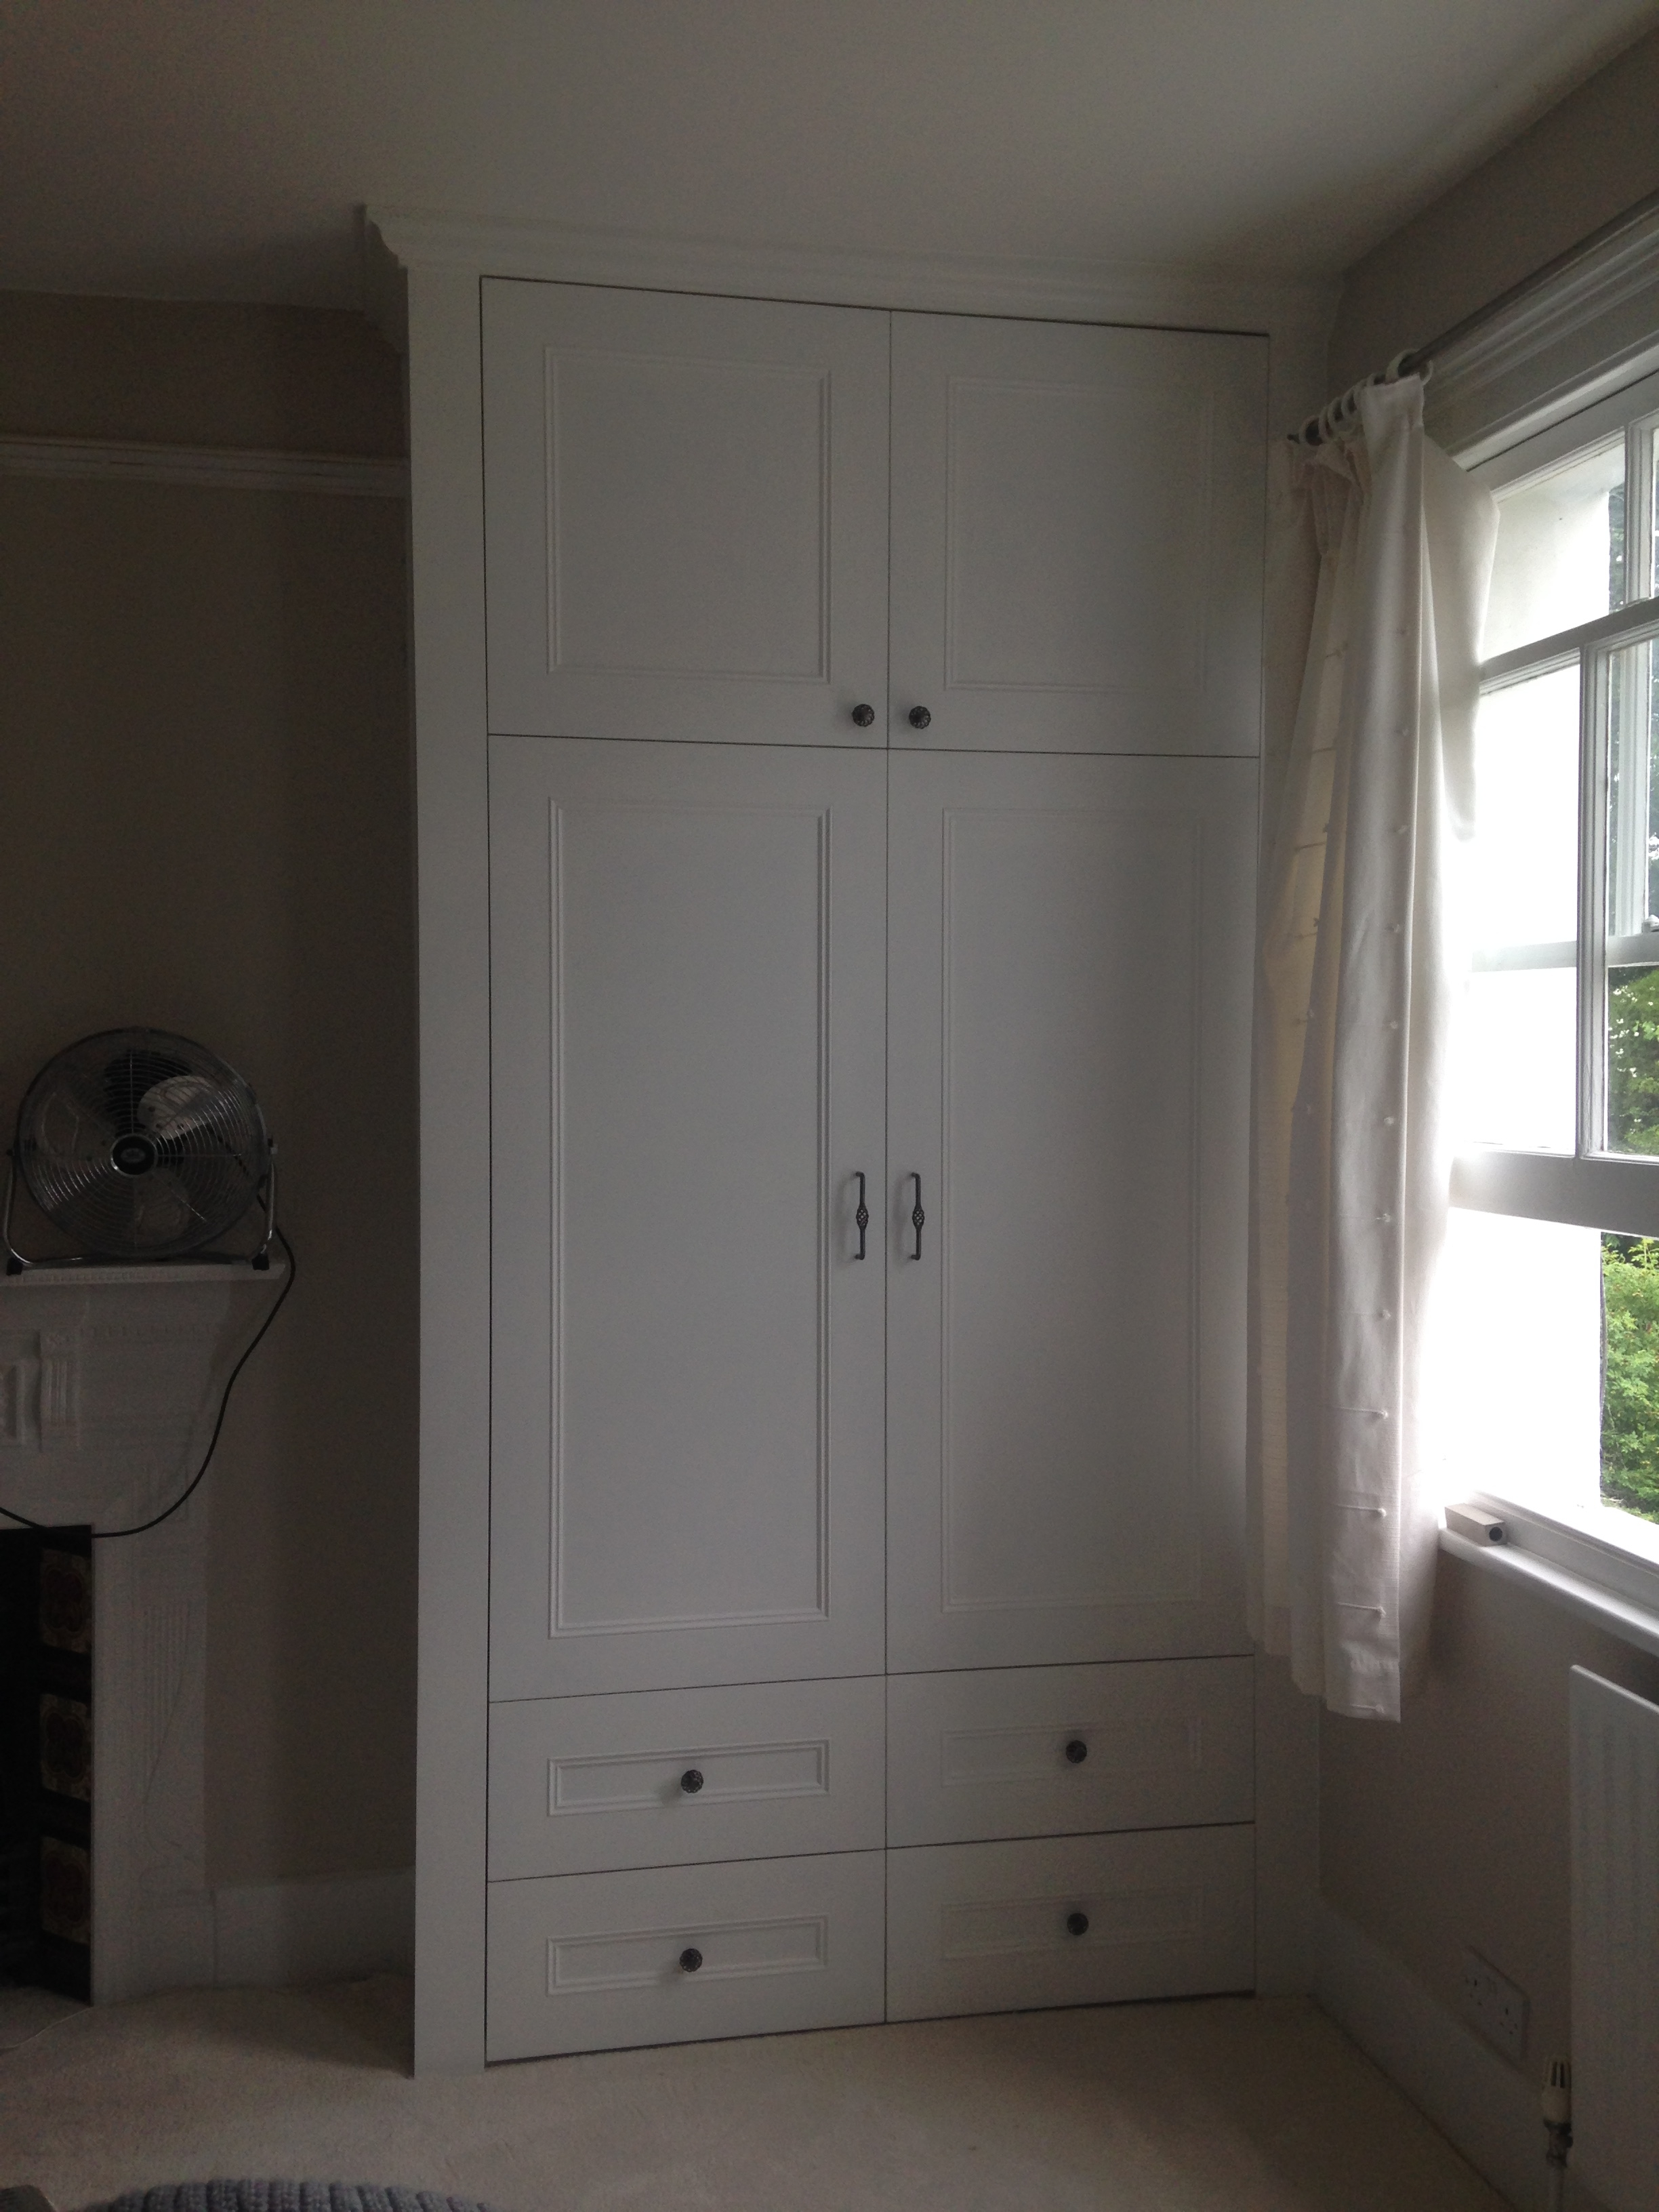 15 Drawers for Fitted Wardrobes  Wardrobe Ideas